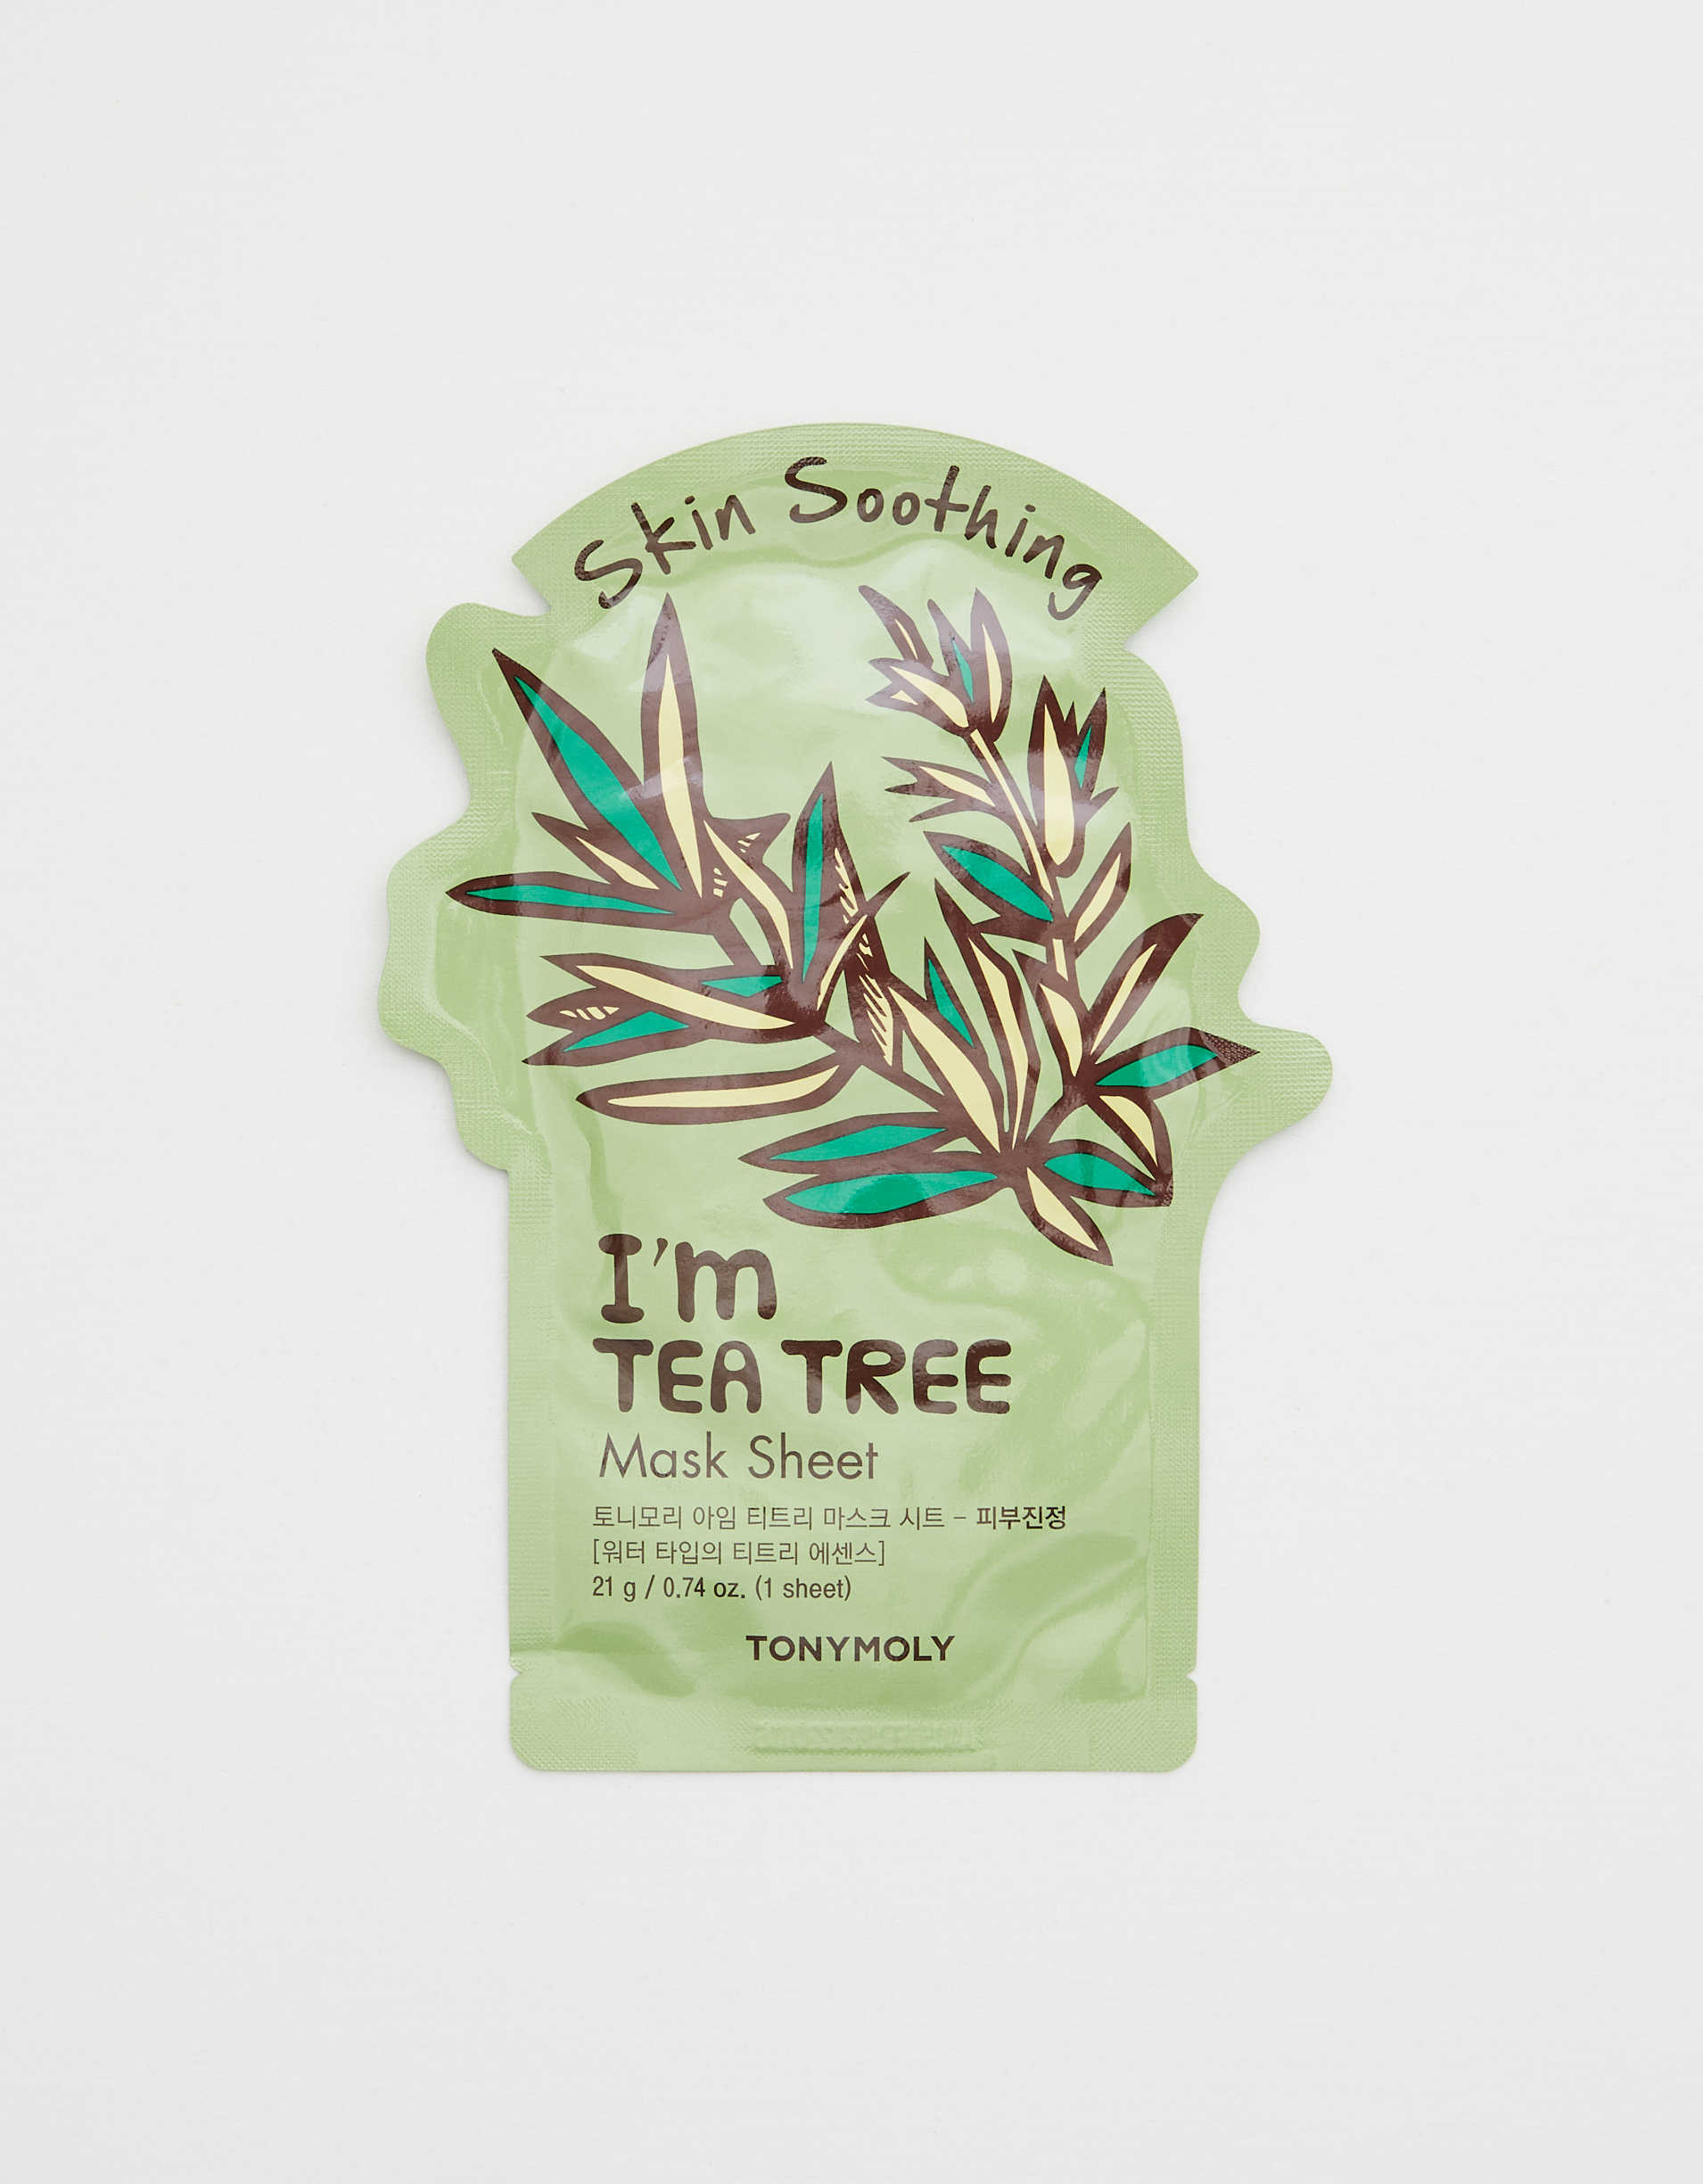 Tony Moly I'm Real Lemon Tea Tree - Skin Soothing